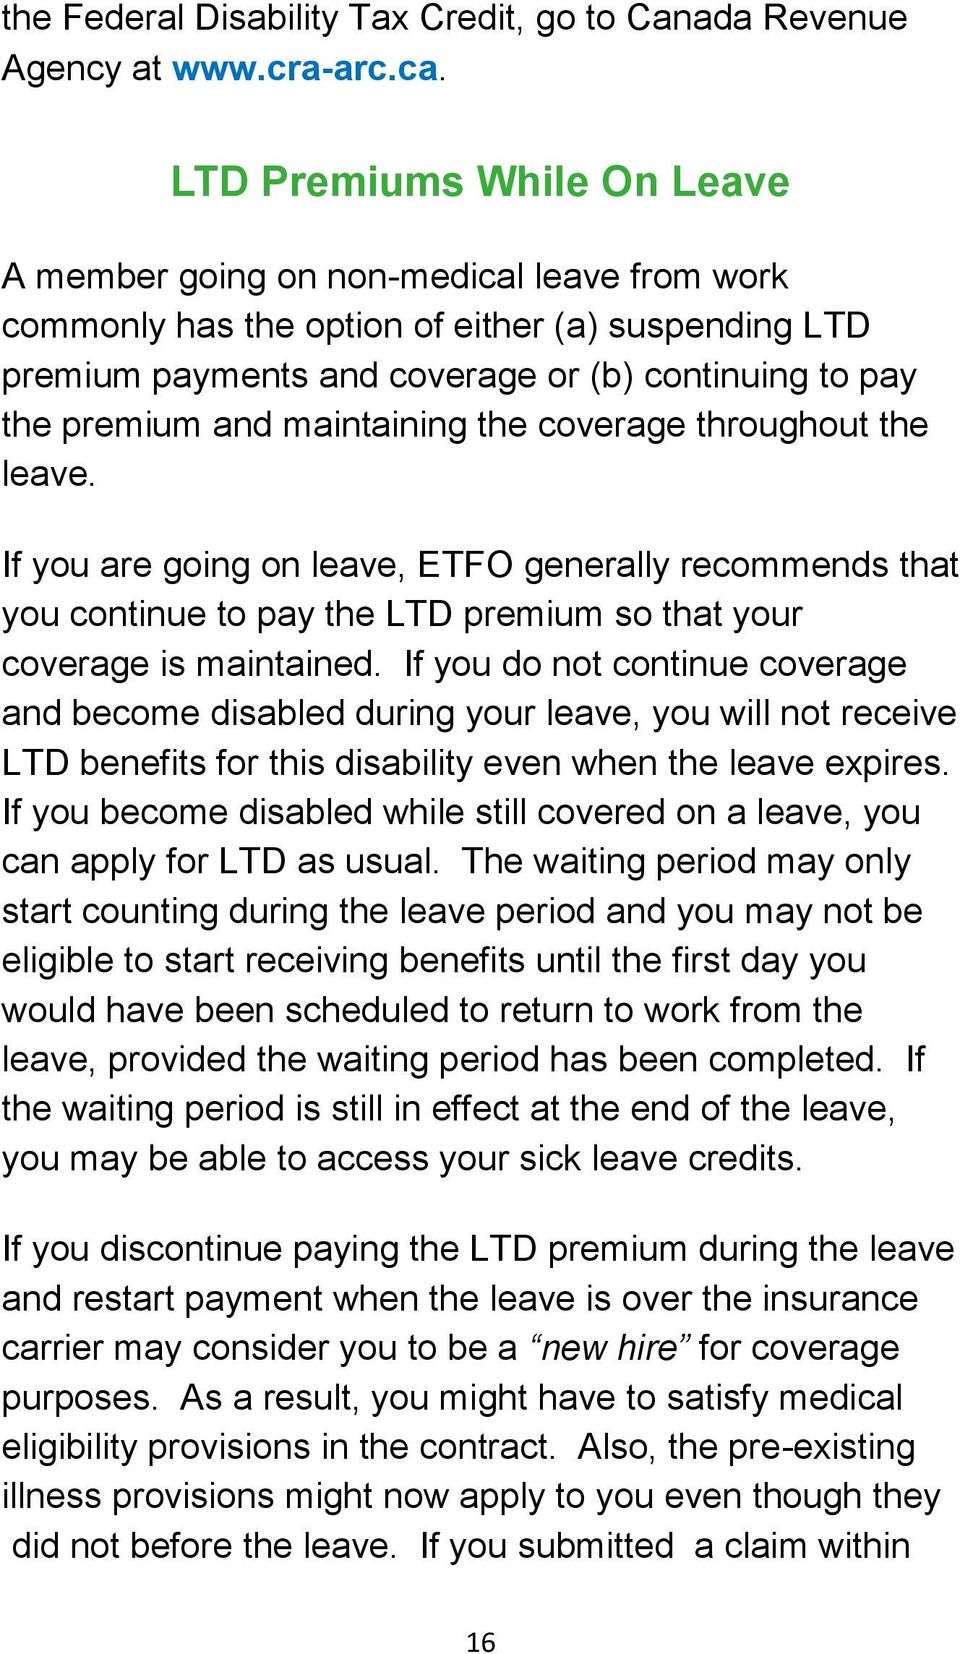 maintaining the coverage throughout the leave. If you are going on leave, ETFO generally recommends that you continue to pay the LTD premium so that your coverage is maintained.